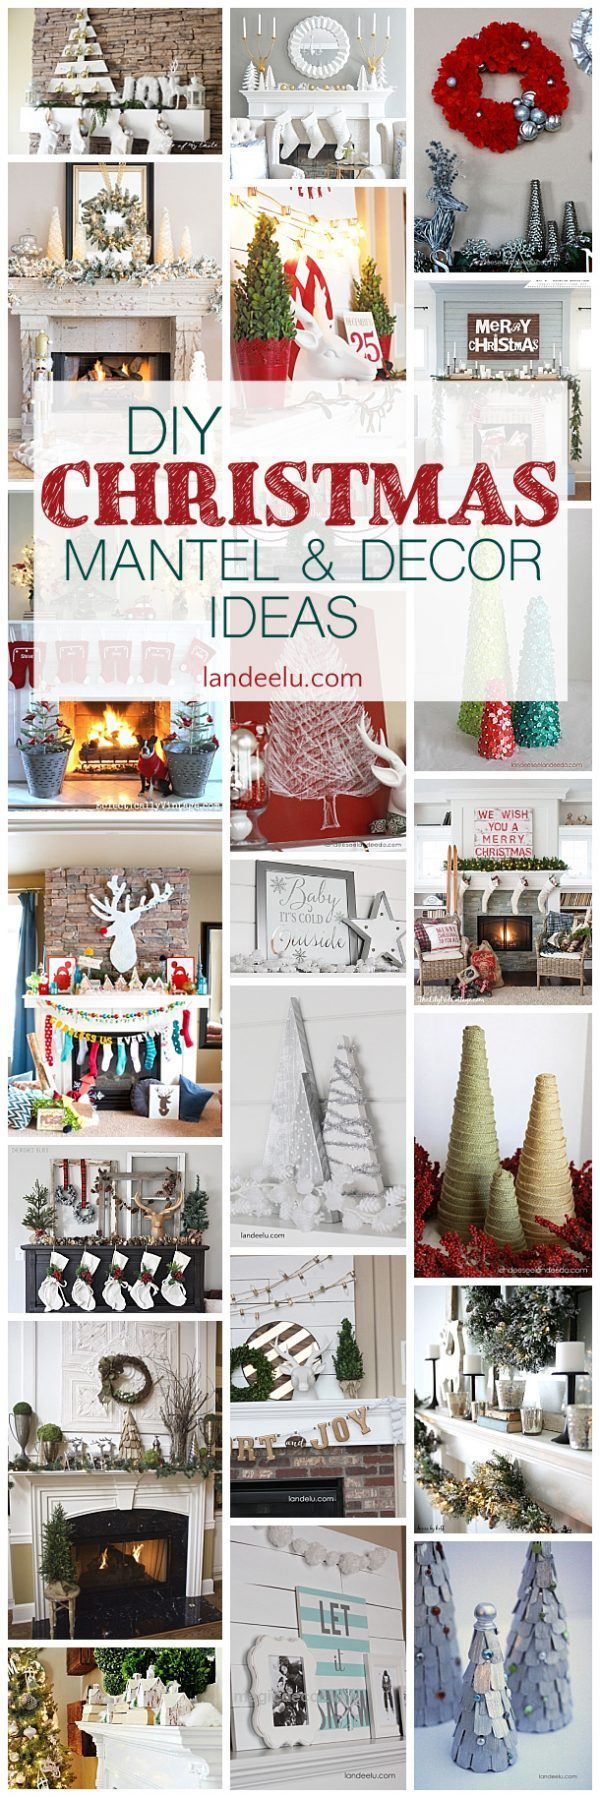 149 best Eclectic images on Pinterest